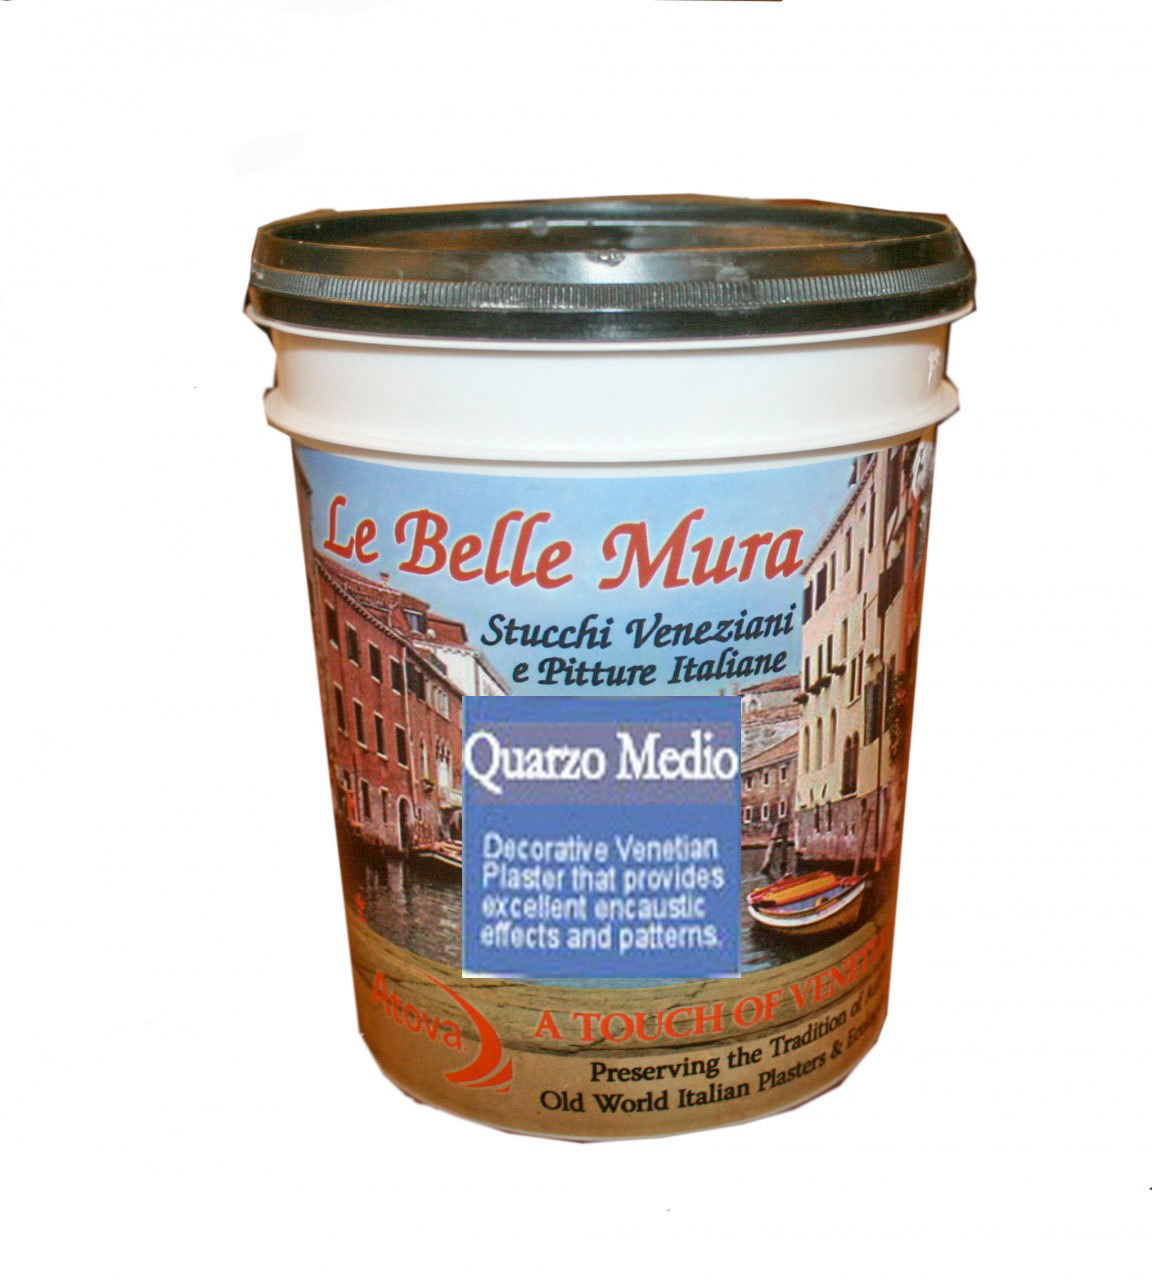 quartz primer for stucco, marmarino and plaster finishes